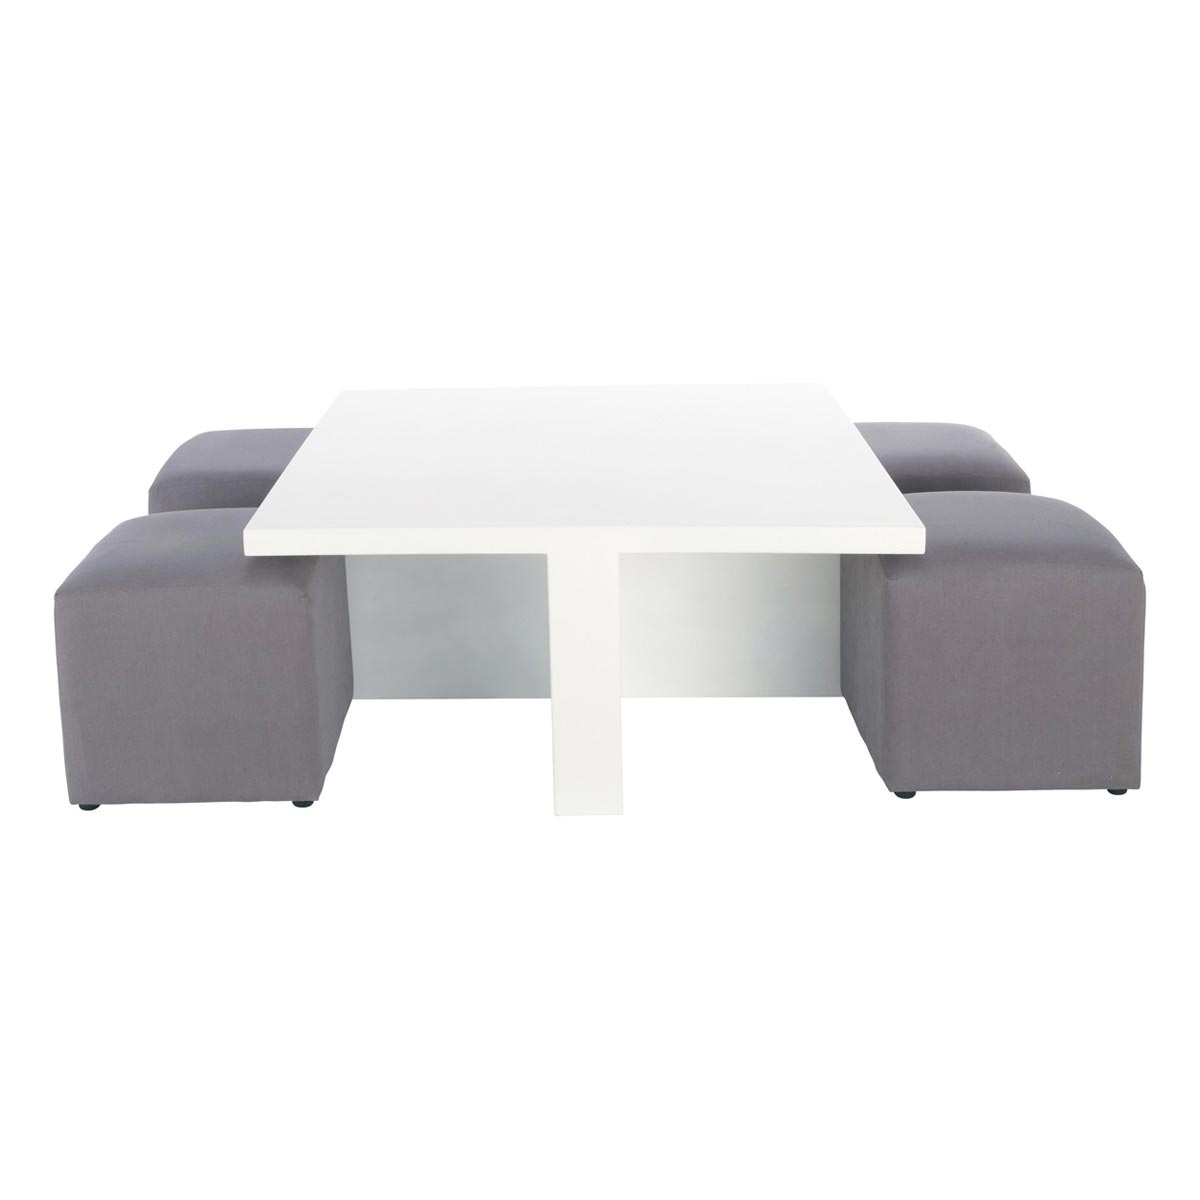 table basse avec pouf design en image. Black Bedroom Furniture Sets. Home Design Ideas